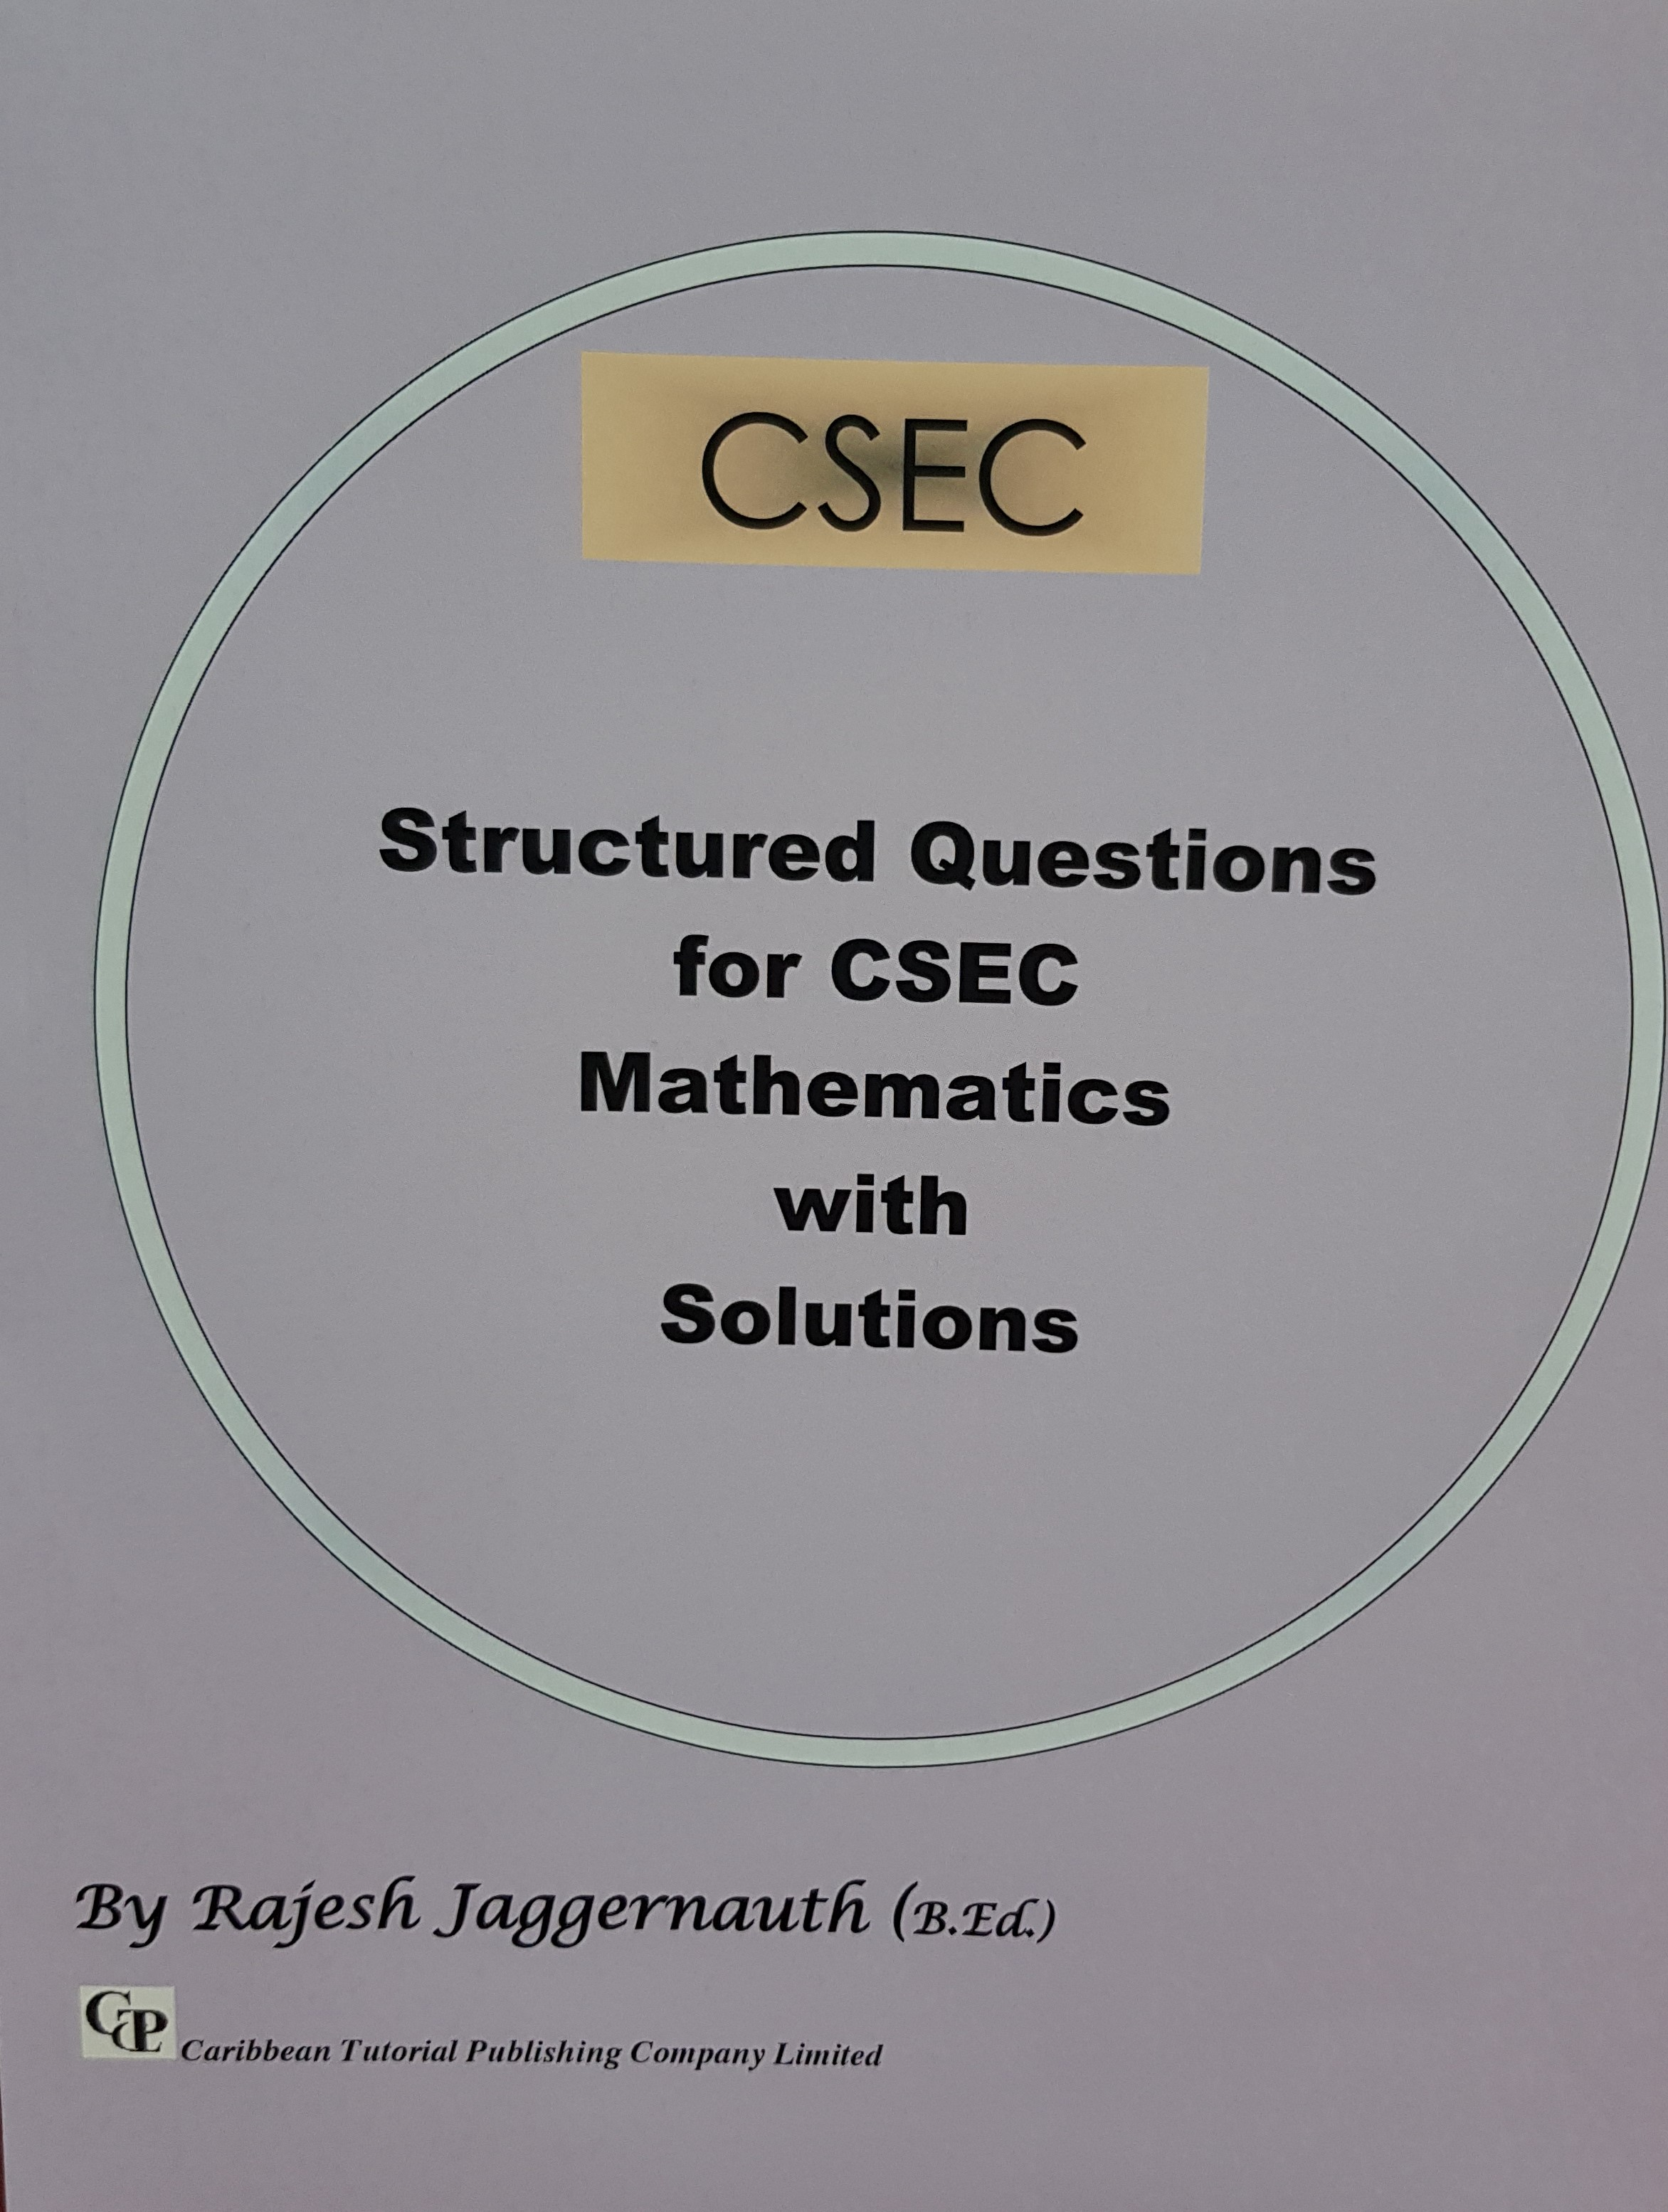 Structured Questions for CSEC Mathematics with Solutions